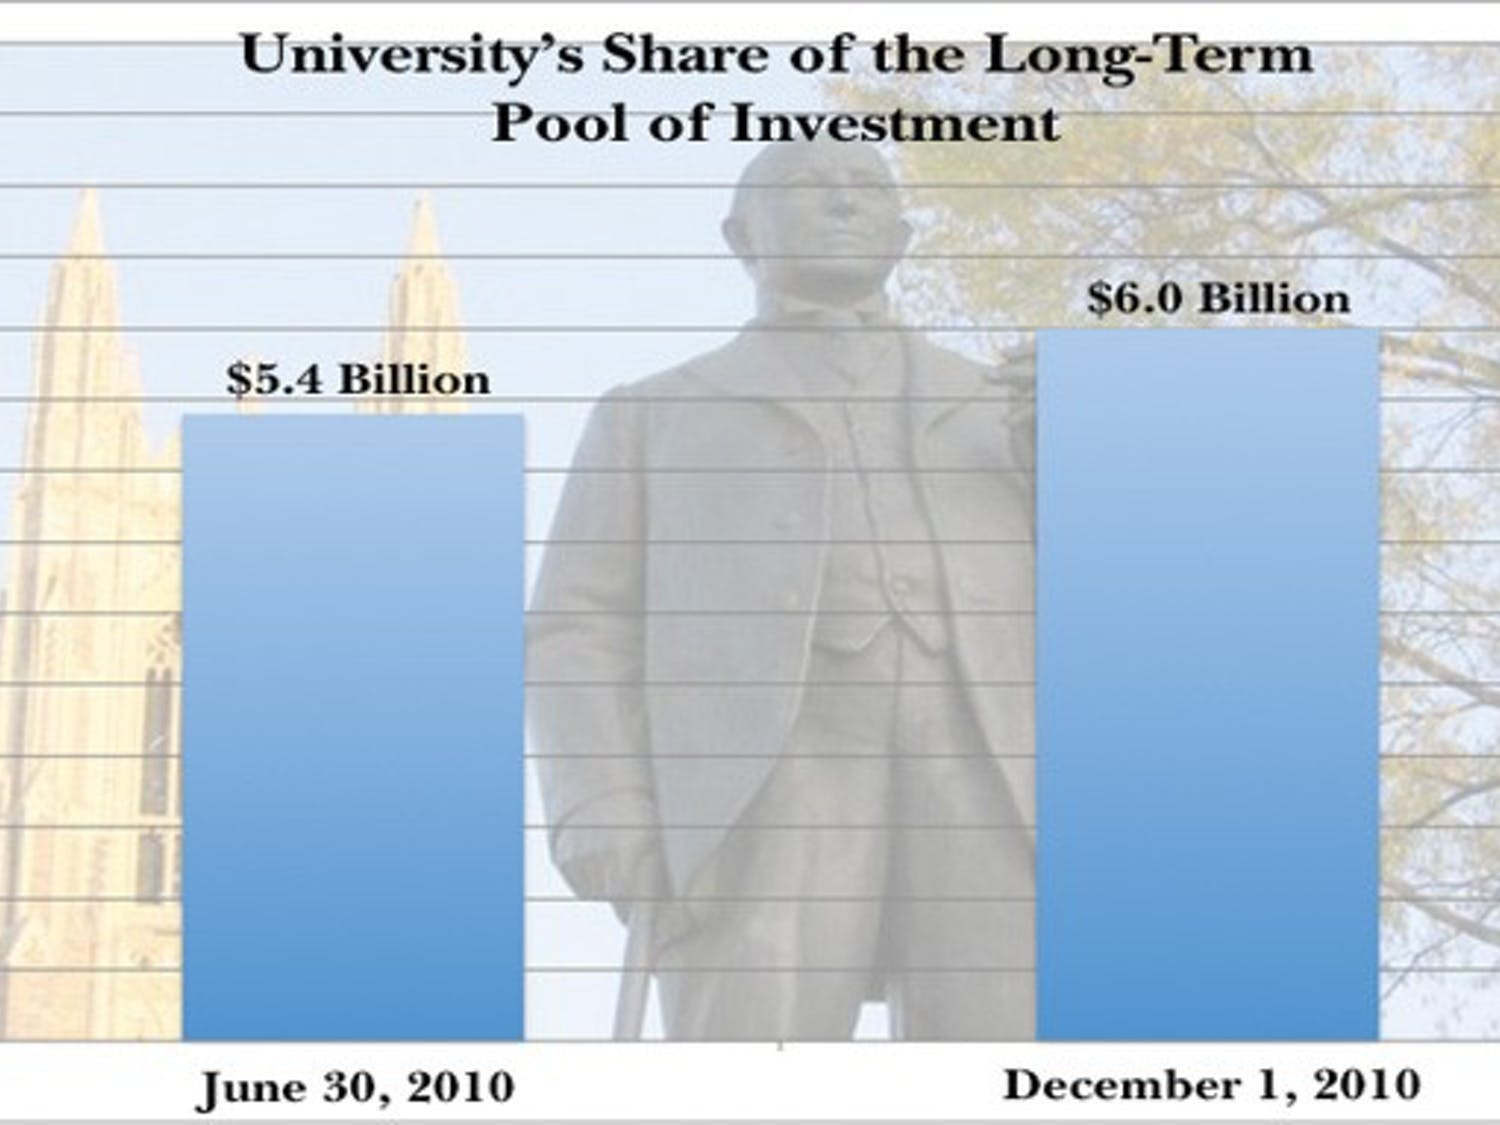 The University's share of the long-term pool of investments managed by the Duke University Management Company, saw 13.3 percent growth in the 2010 calendar year, exceeding previous expectations.